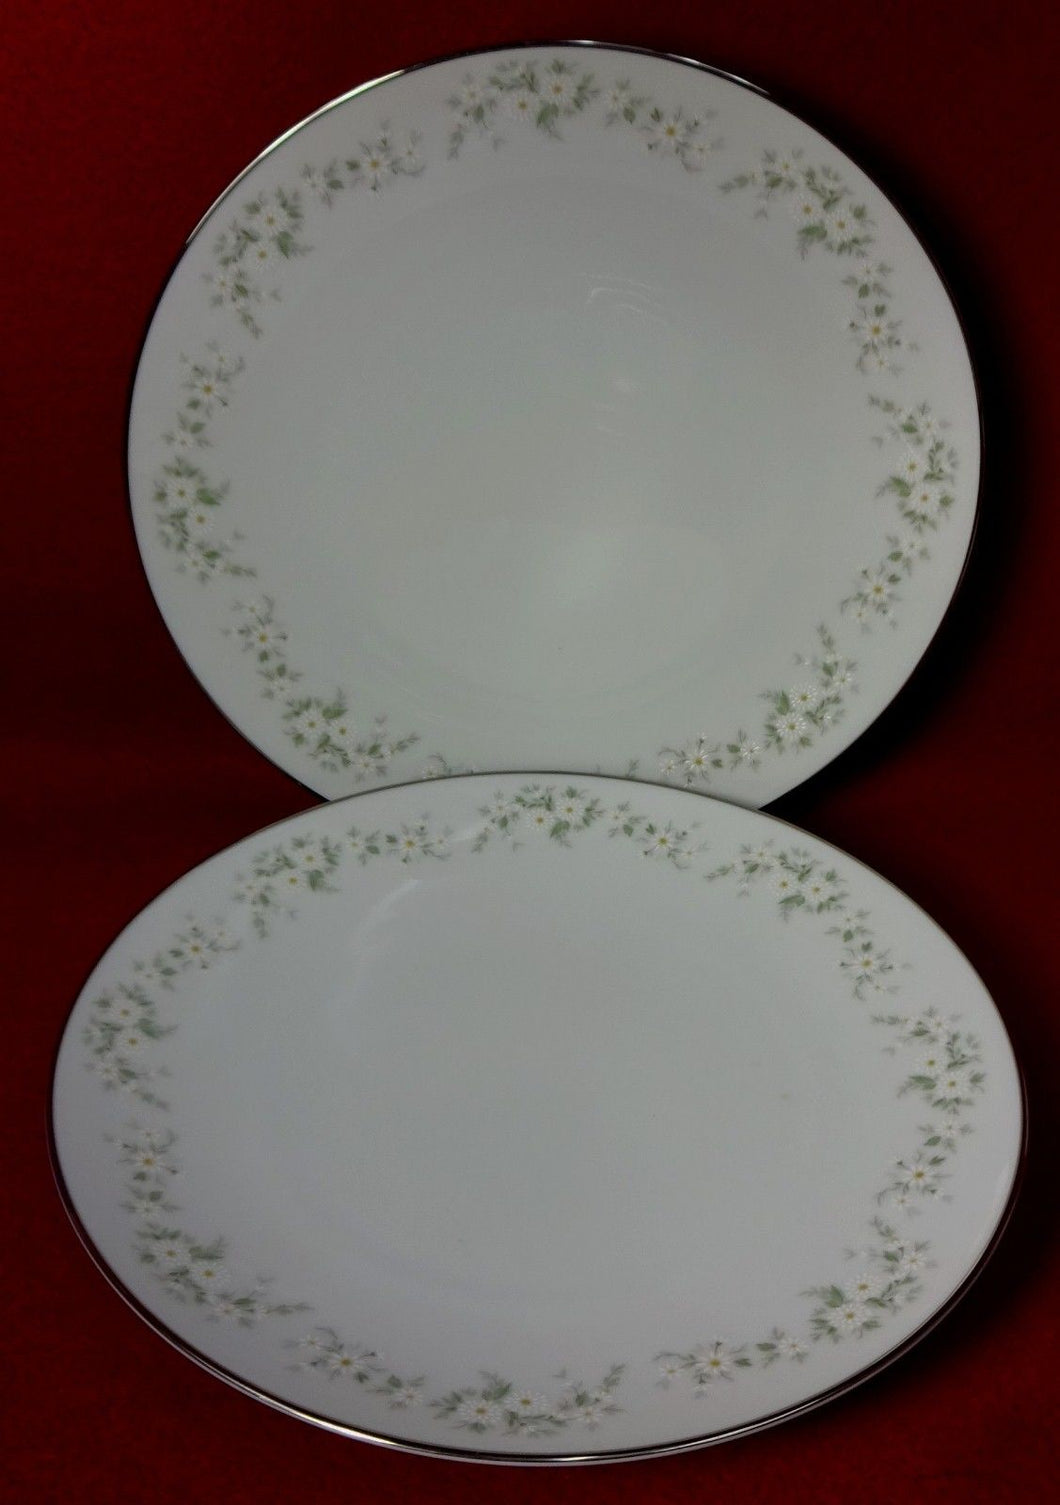 NORITAKE china ANNABELLE 6856 pattern Salad Plate - Set of Two (2) - 8-1/4